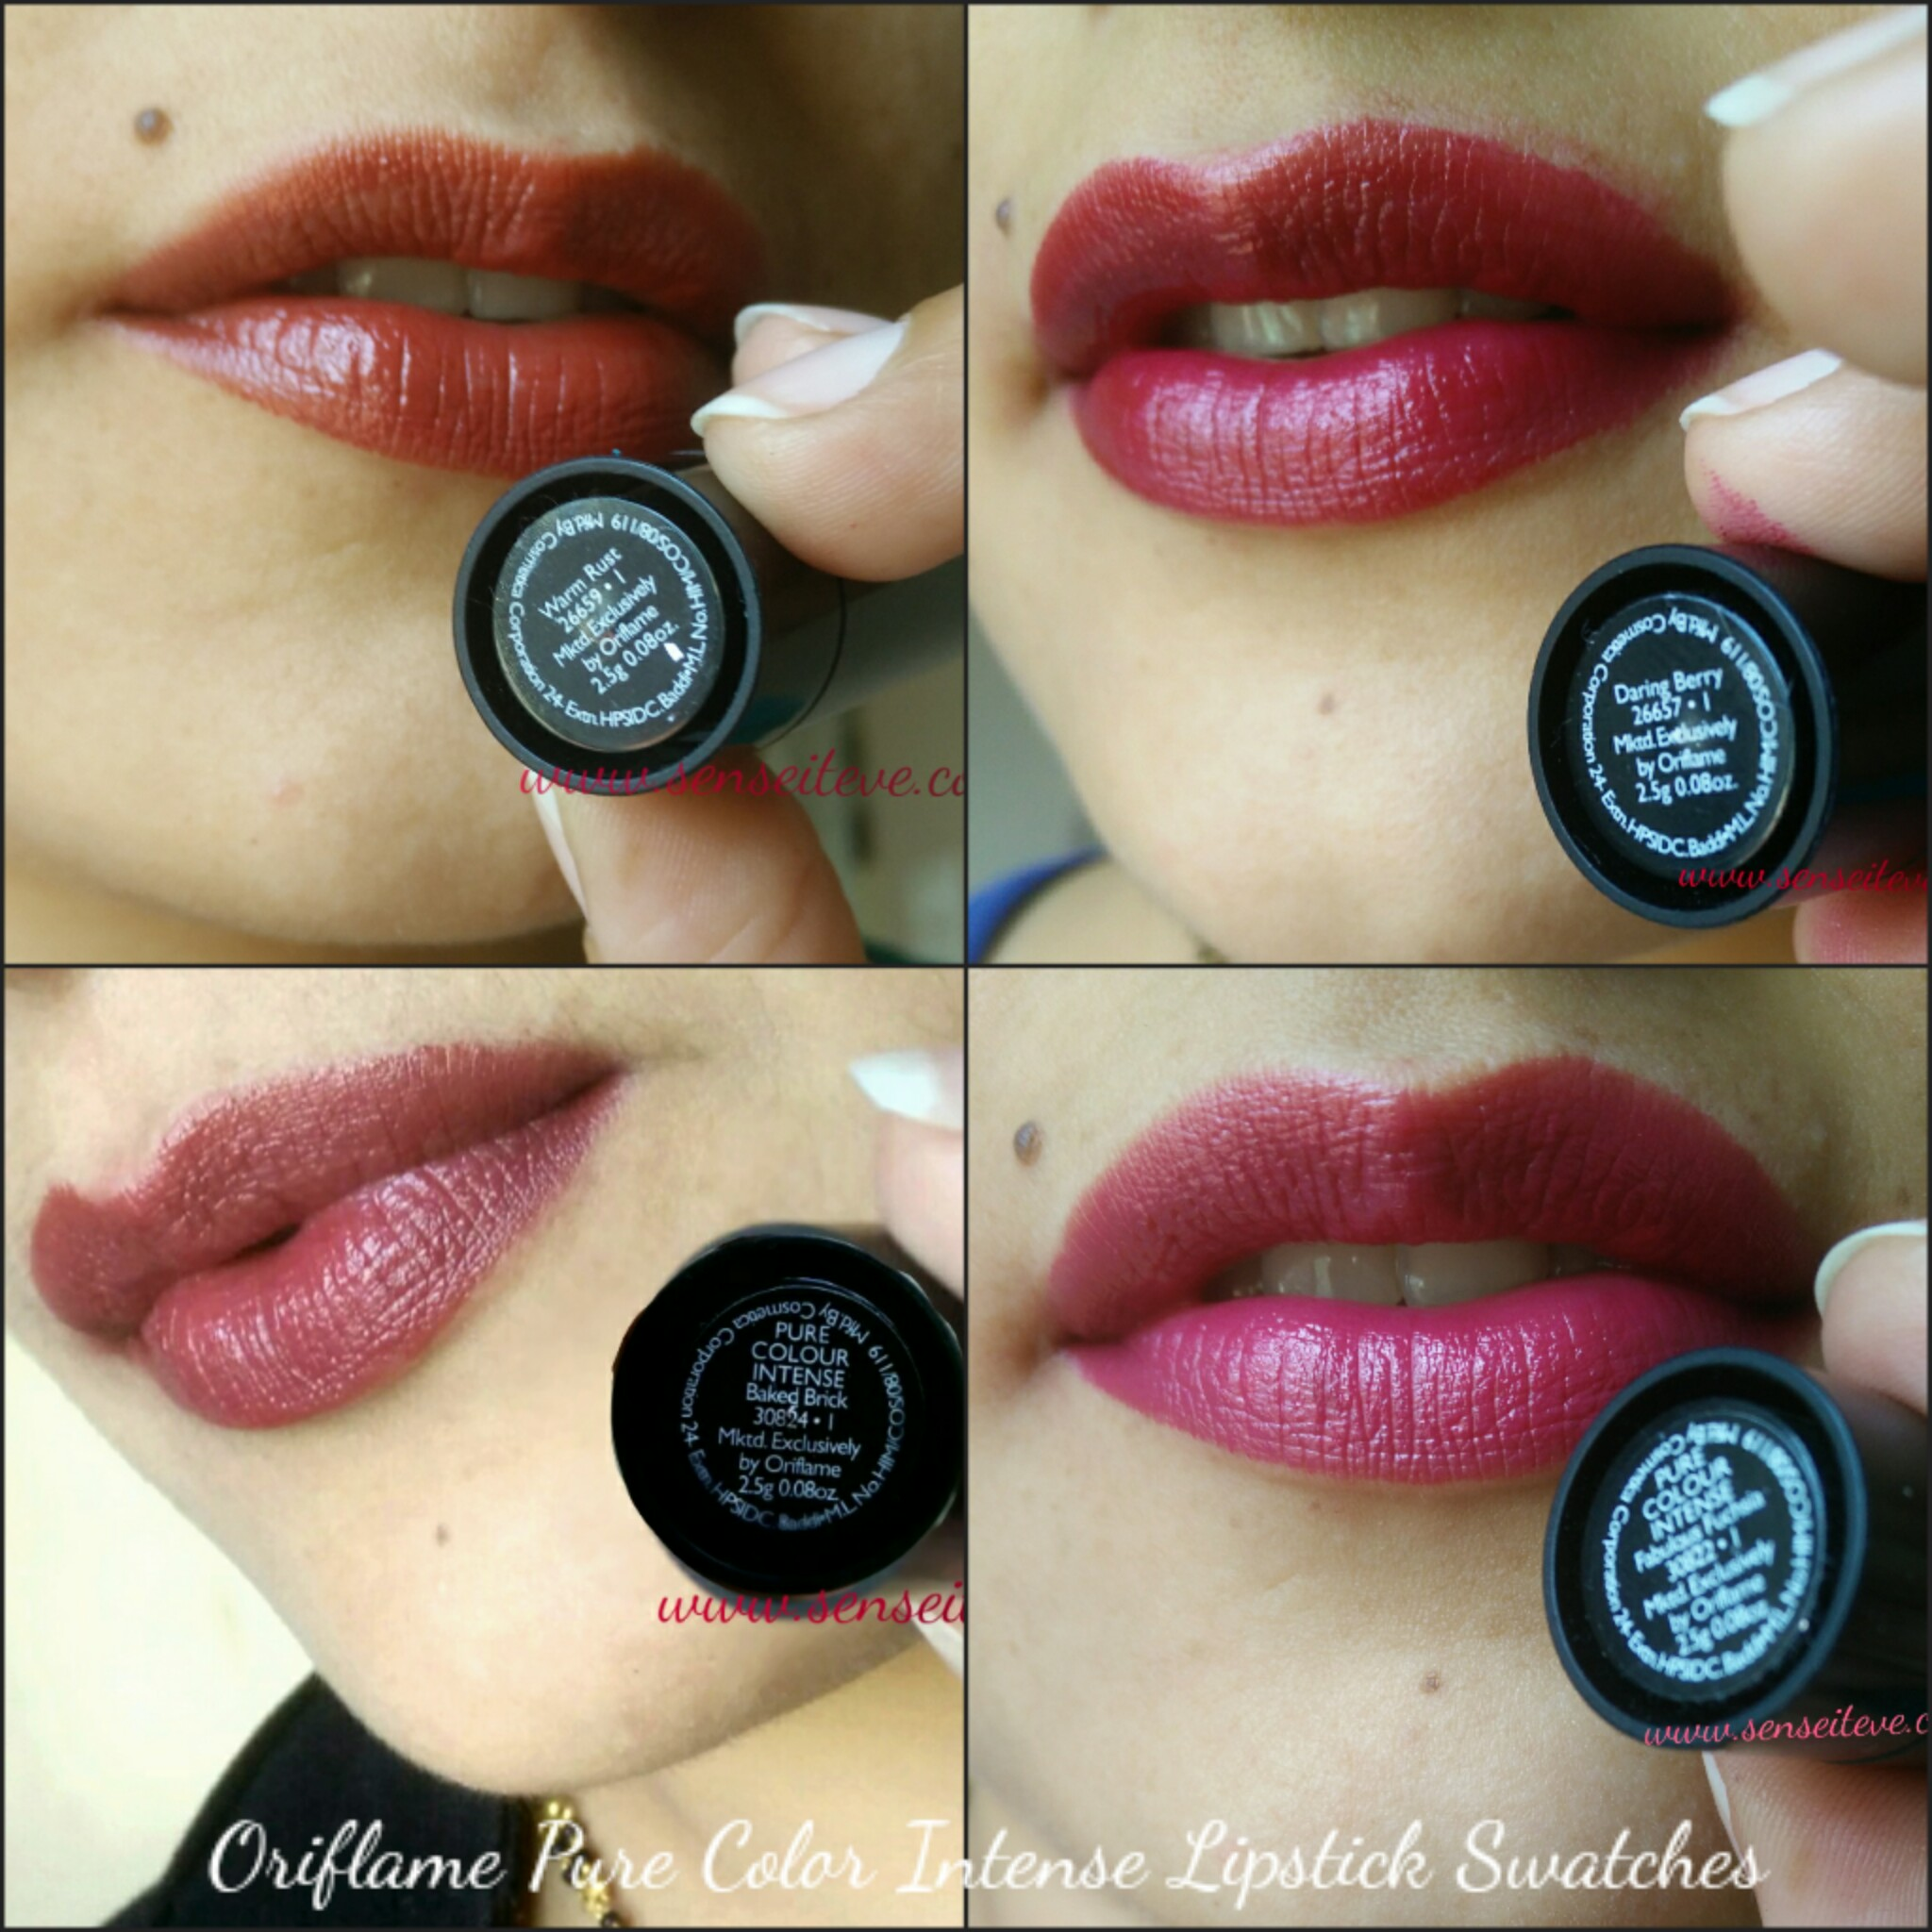 Oriflame Pure Color Intense Lipsticks Review and Swatches - Sense It ...